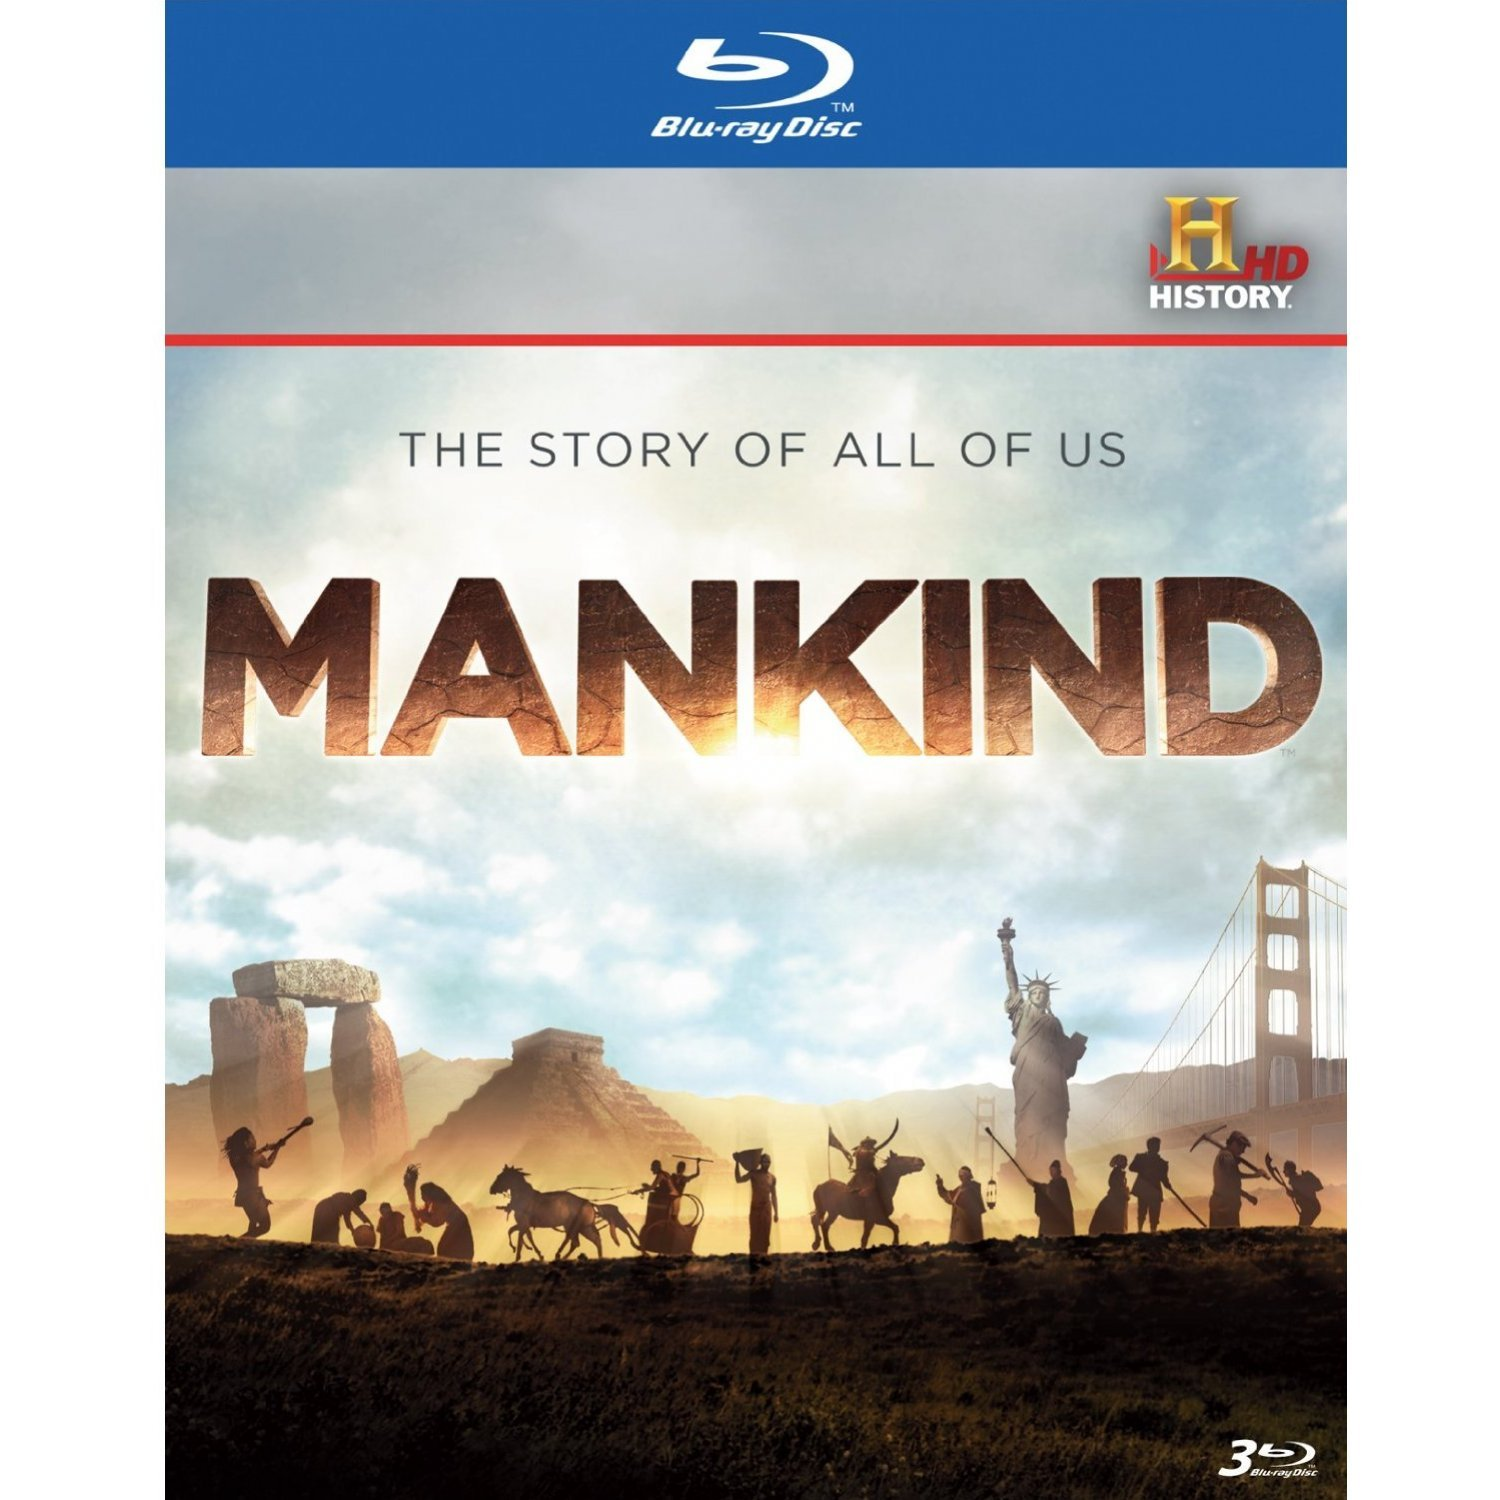 mankind story of us The end of the civil war allows mankind to go into overdrive this is an age of innovation, transformation, and mass production, but the desire to build bigger, faster, and better leads to a titanic disaster.